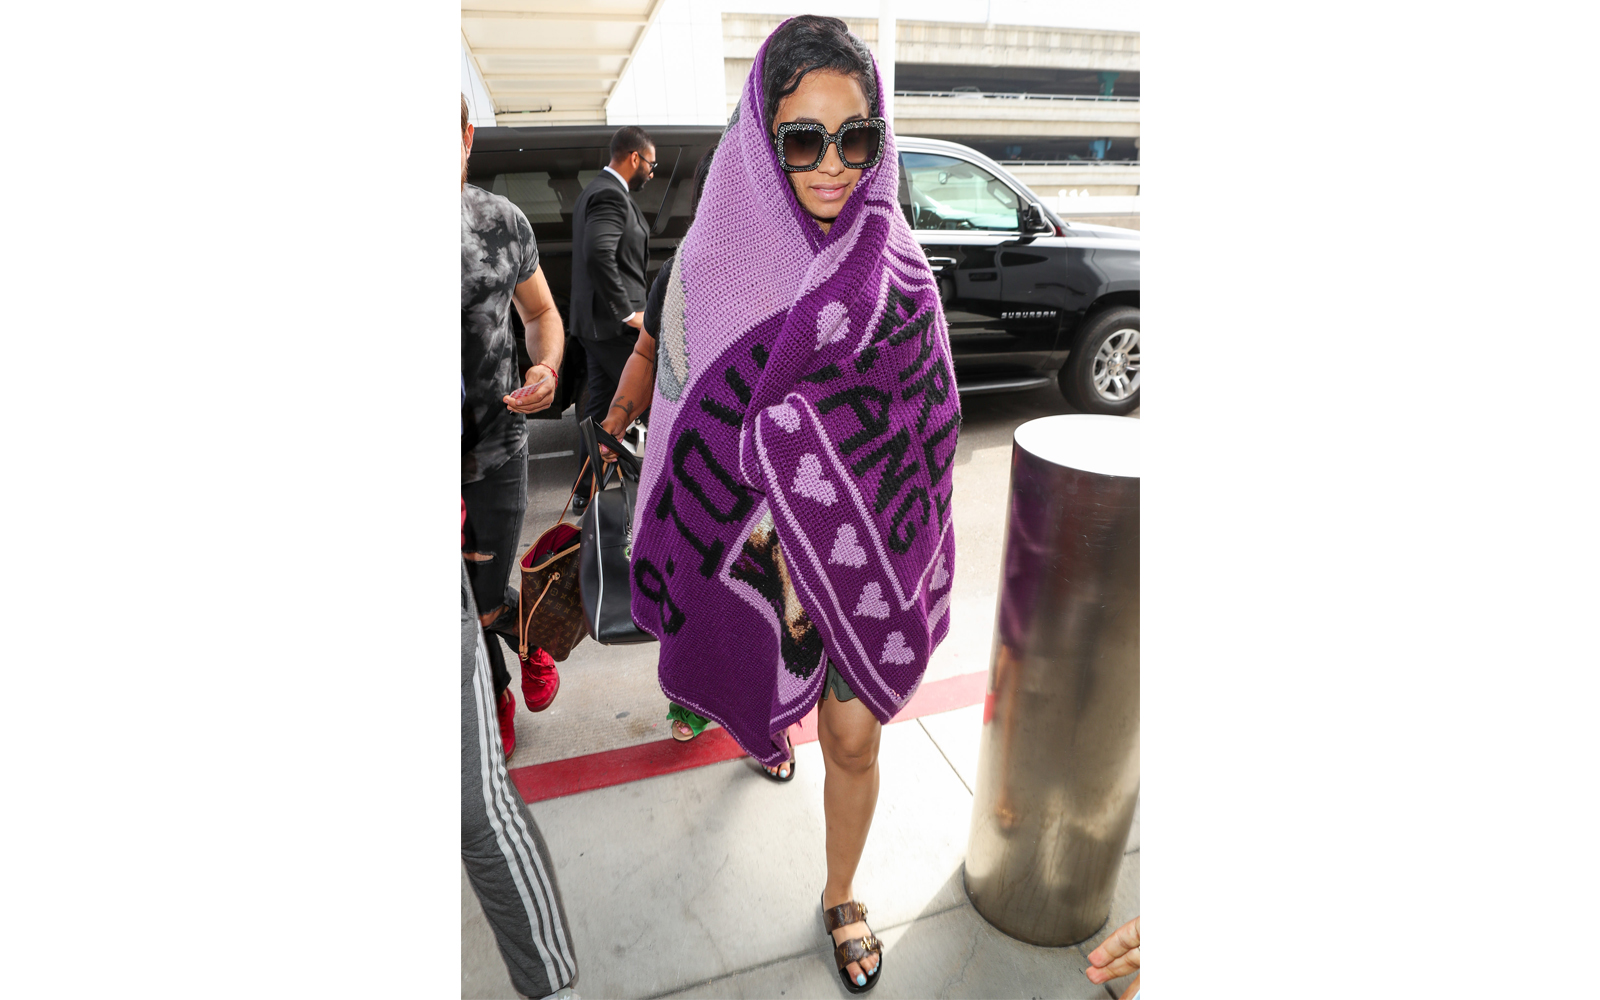 Cardi B Wears Blanket to LAX Airport